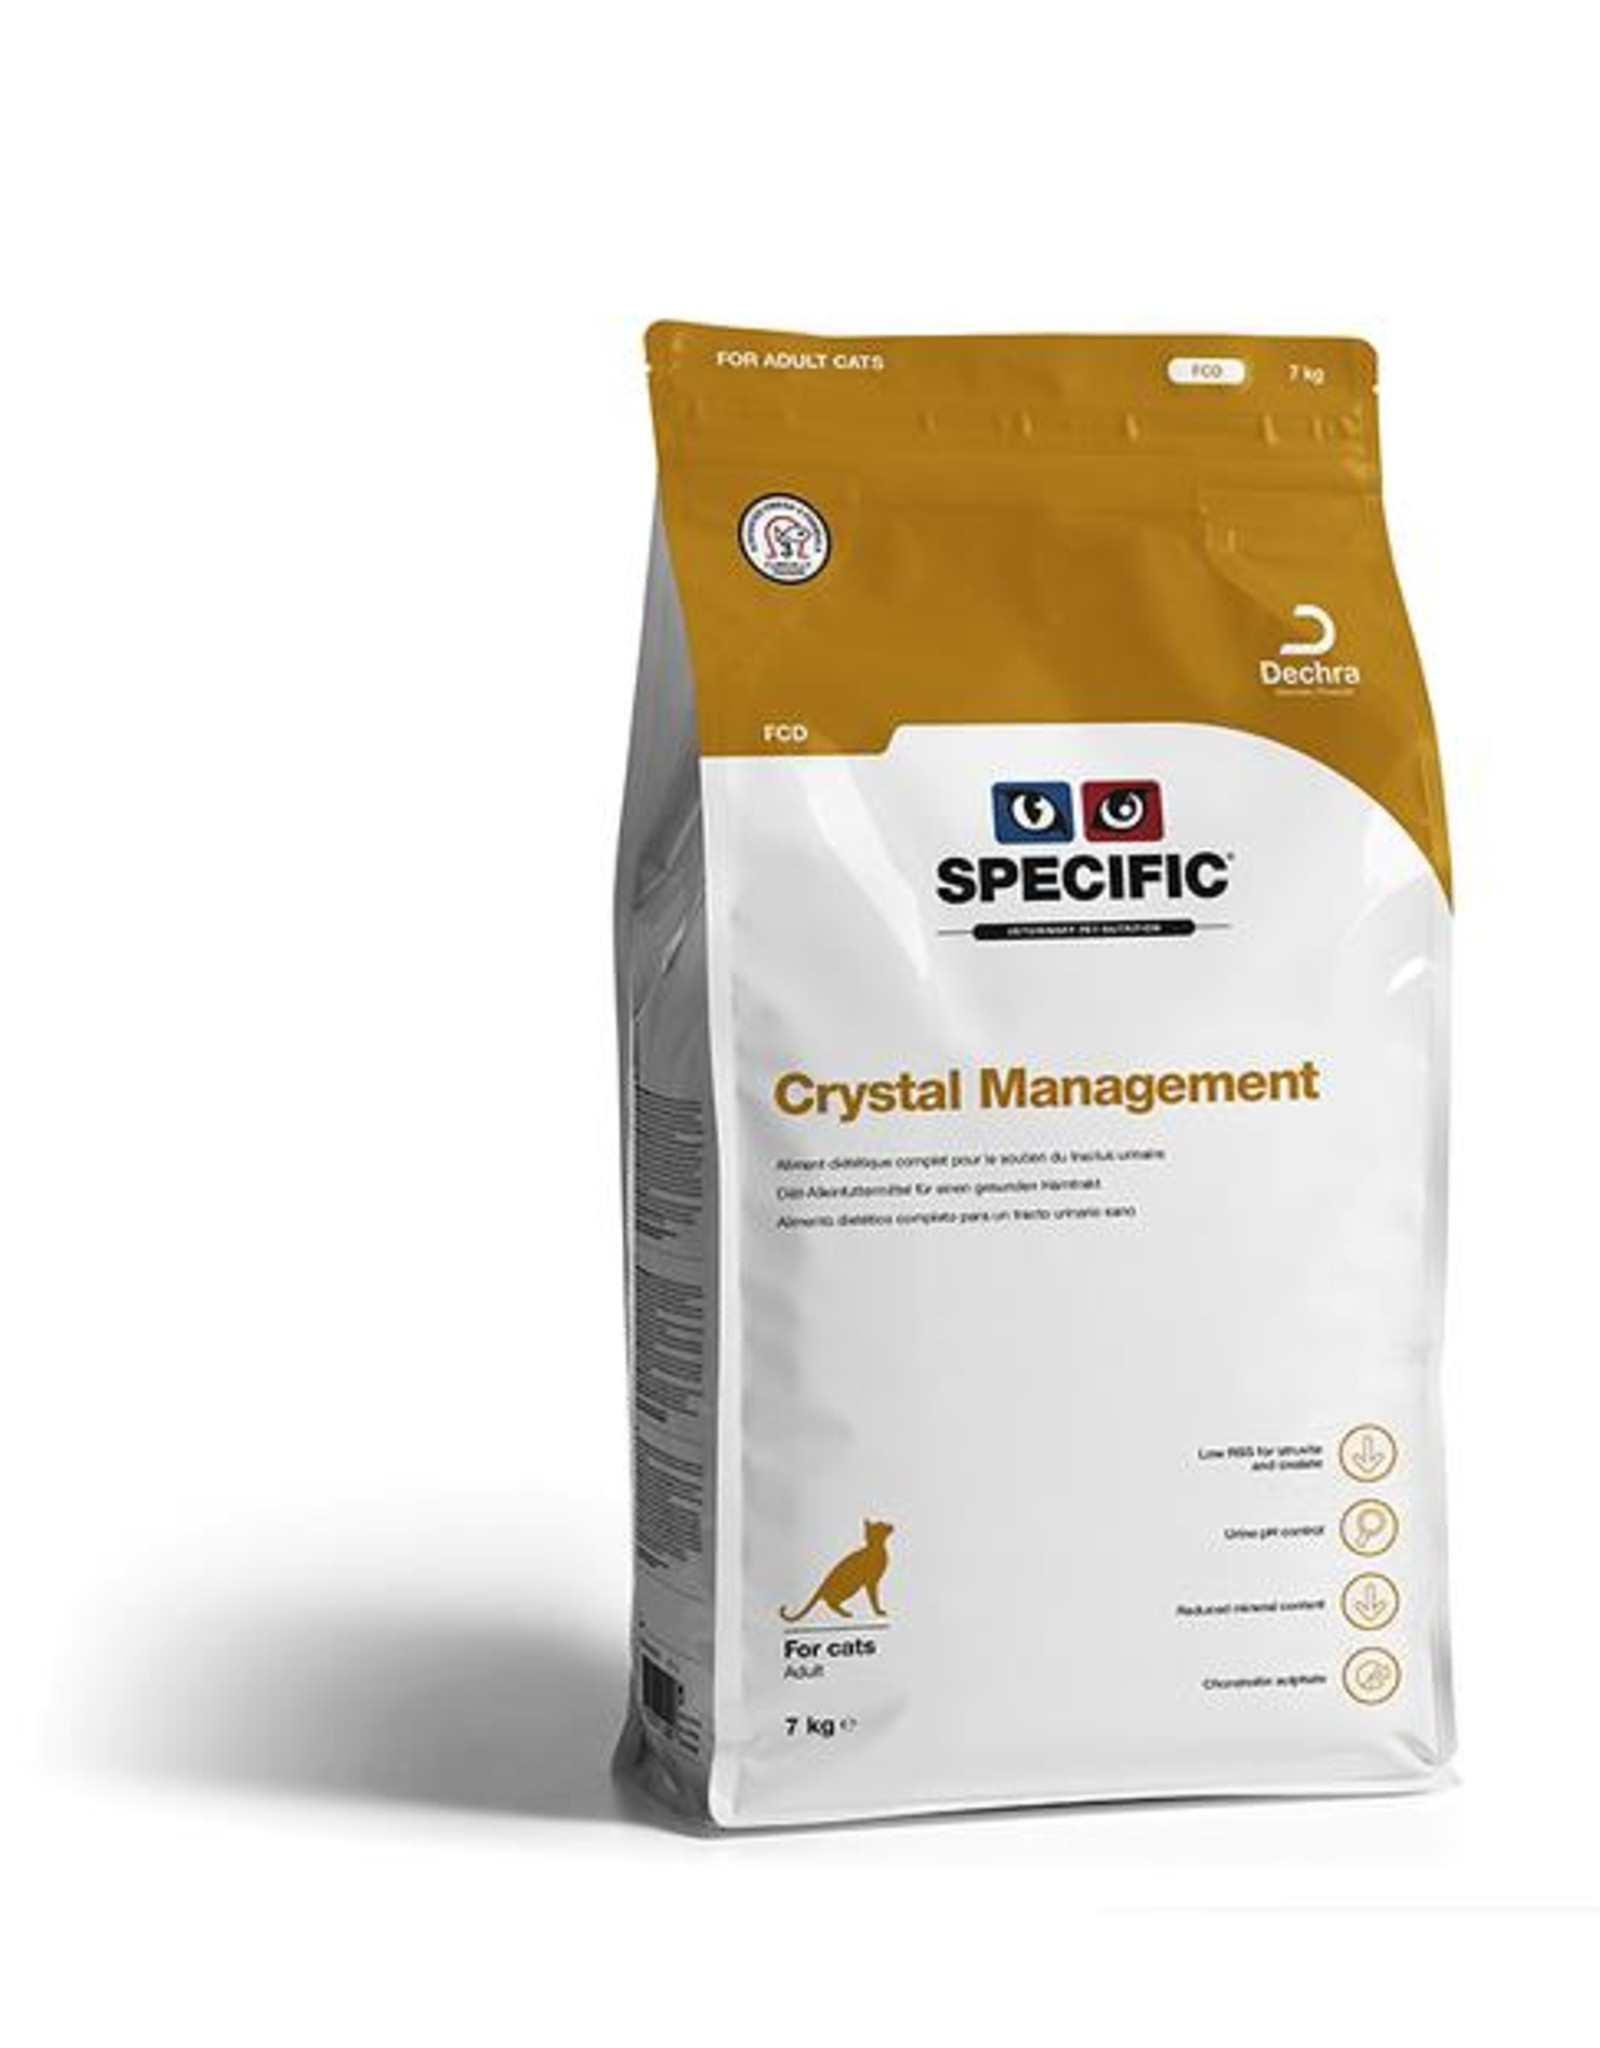 Specific Fcd Crystal Management Cat 4x400g